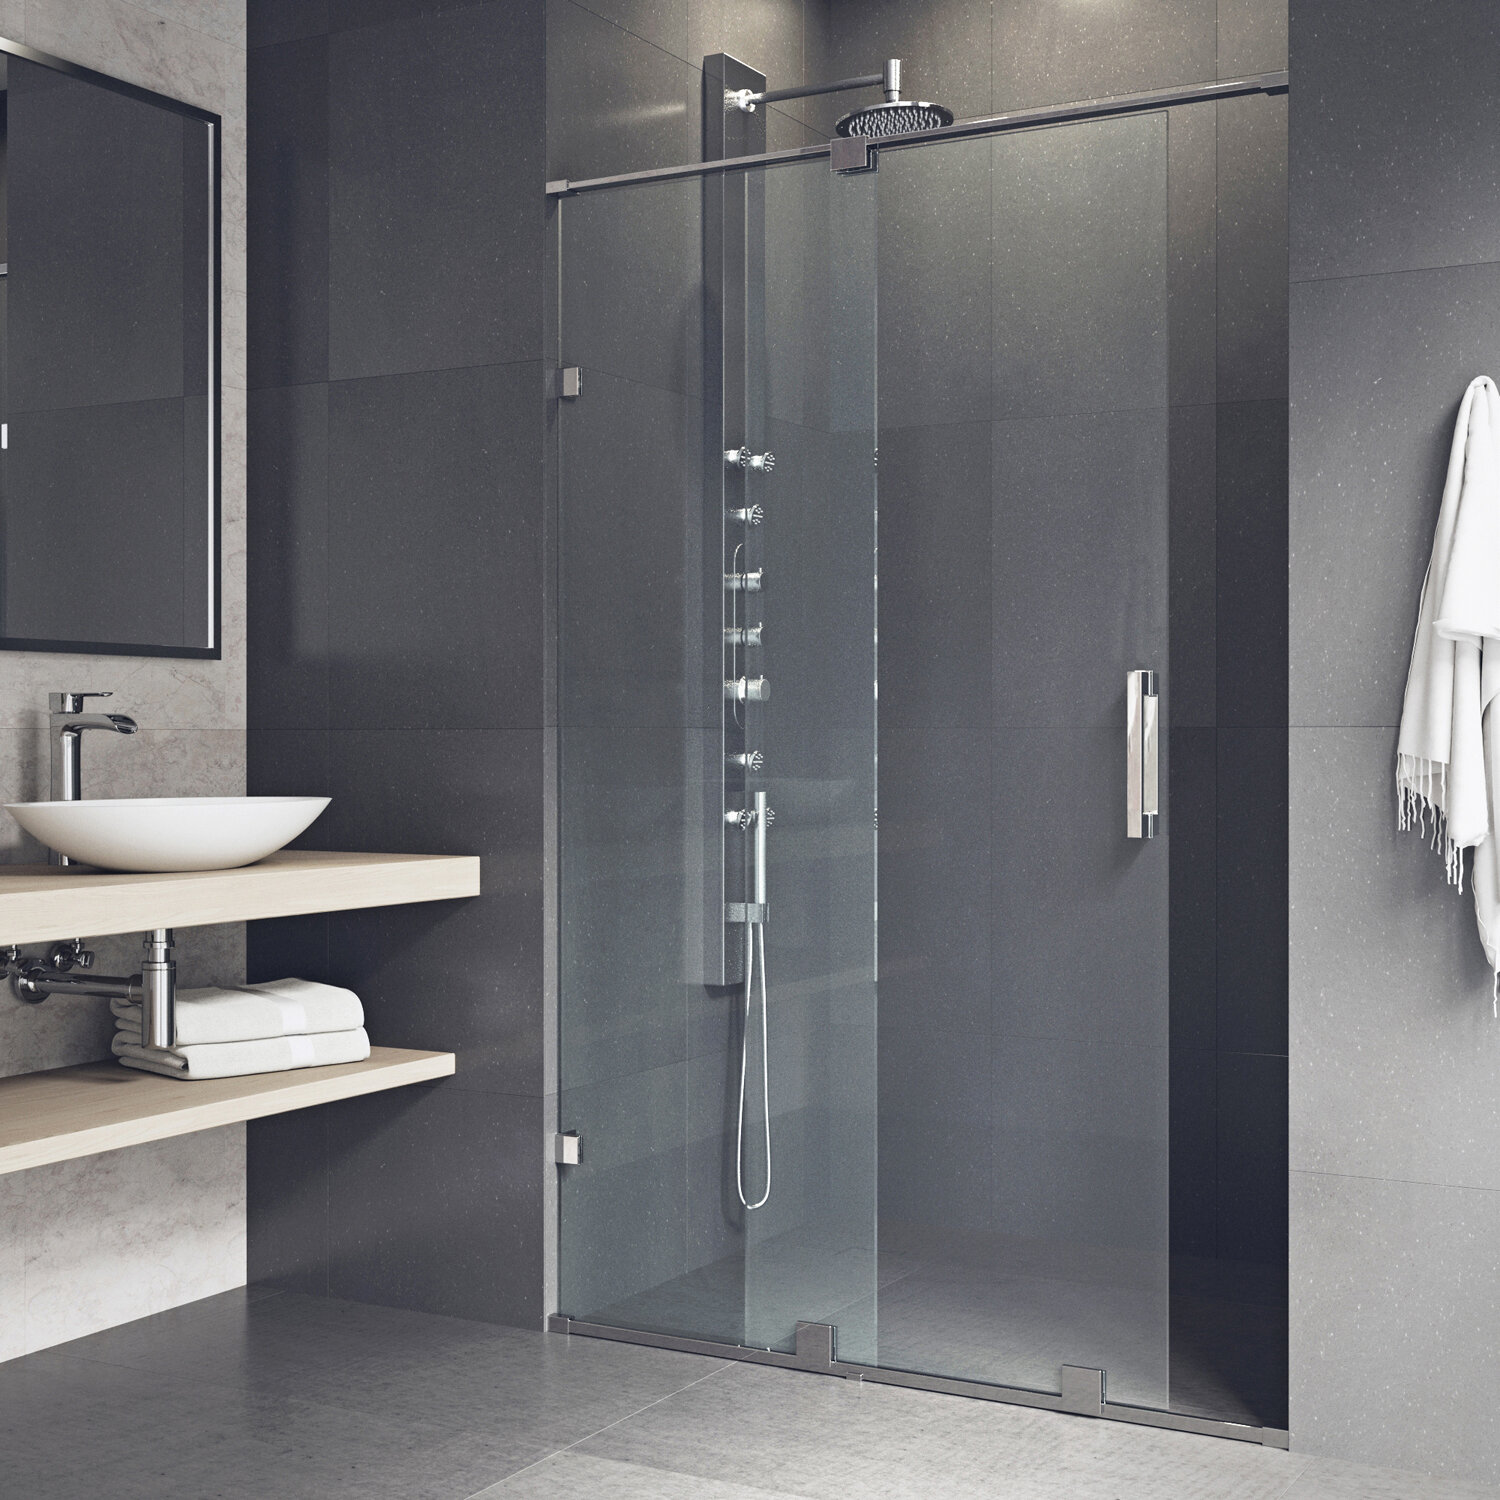 Ryland 62 X 73 Single Sliding Frameless Shower Door With Rollerdisk Technology